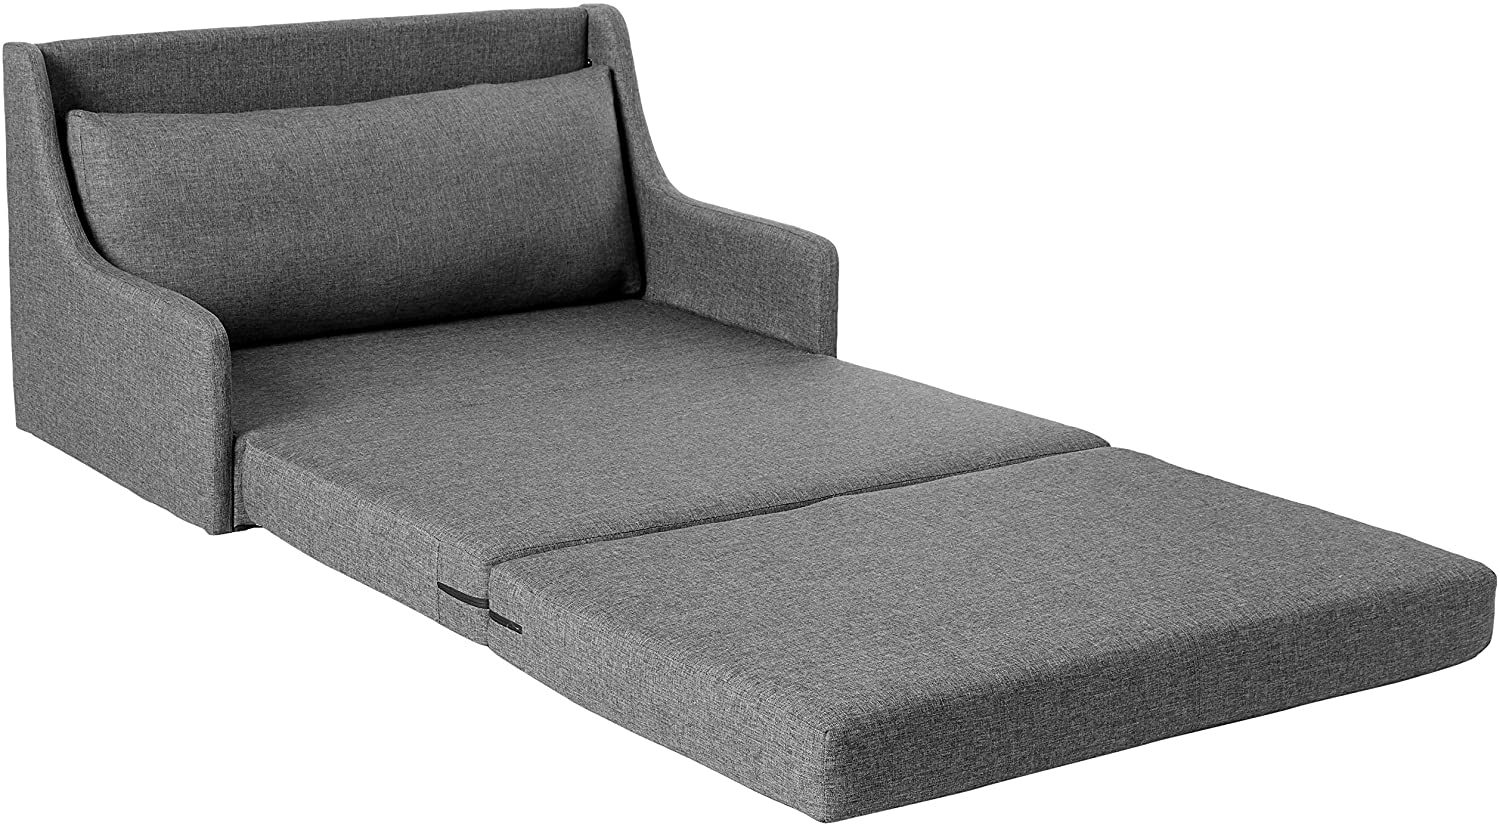 18 Best Sleeper Chairs For Adults | Sleepauthorities Throughout New London Convertible Chairs (View 9 of 15)